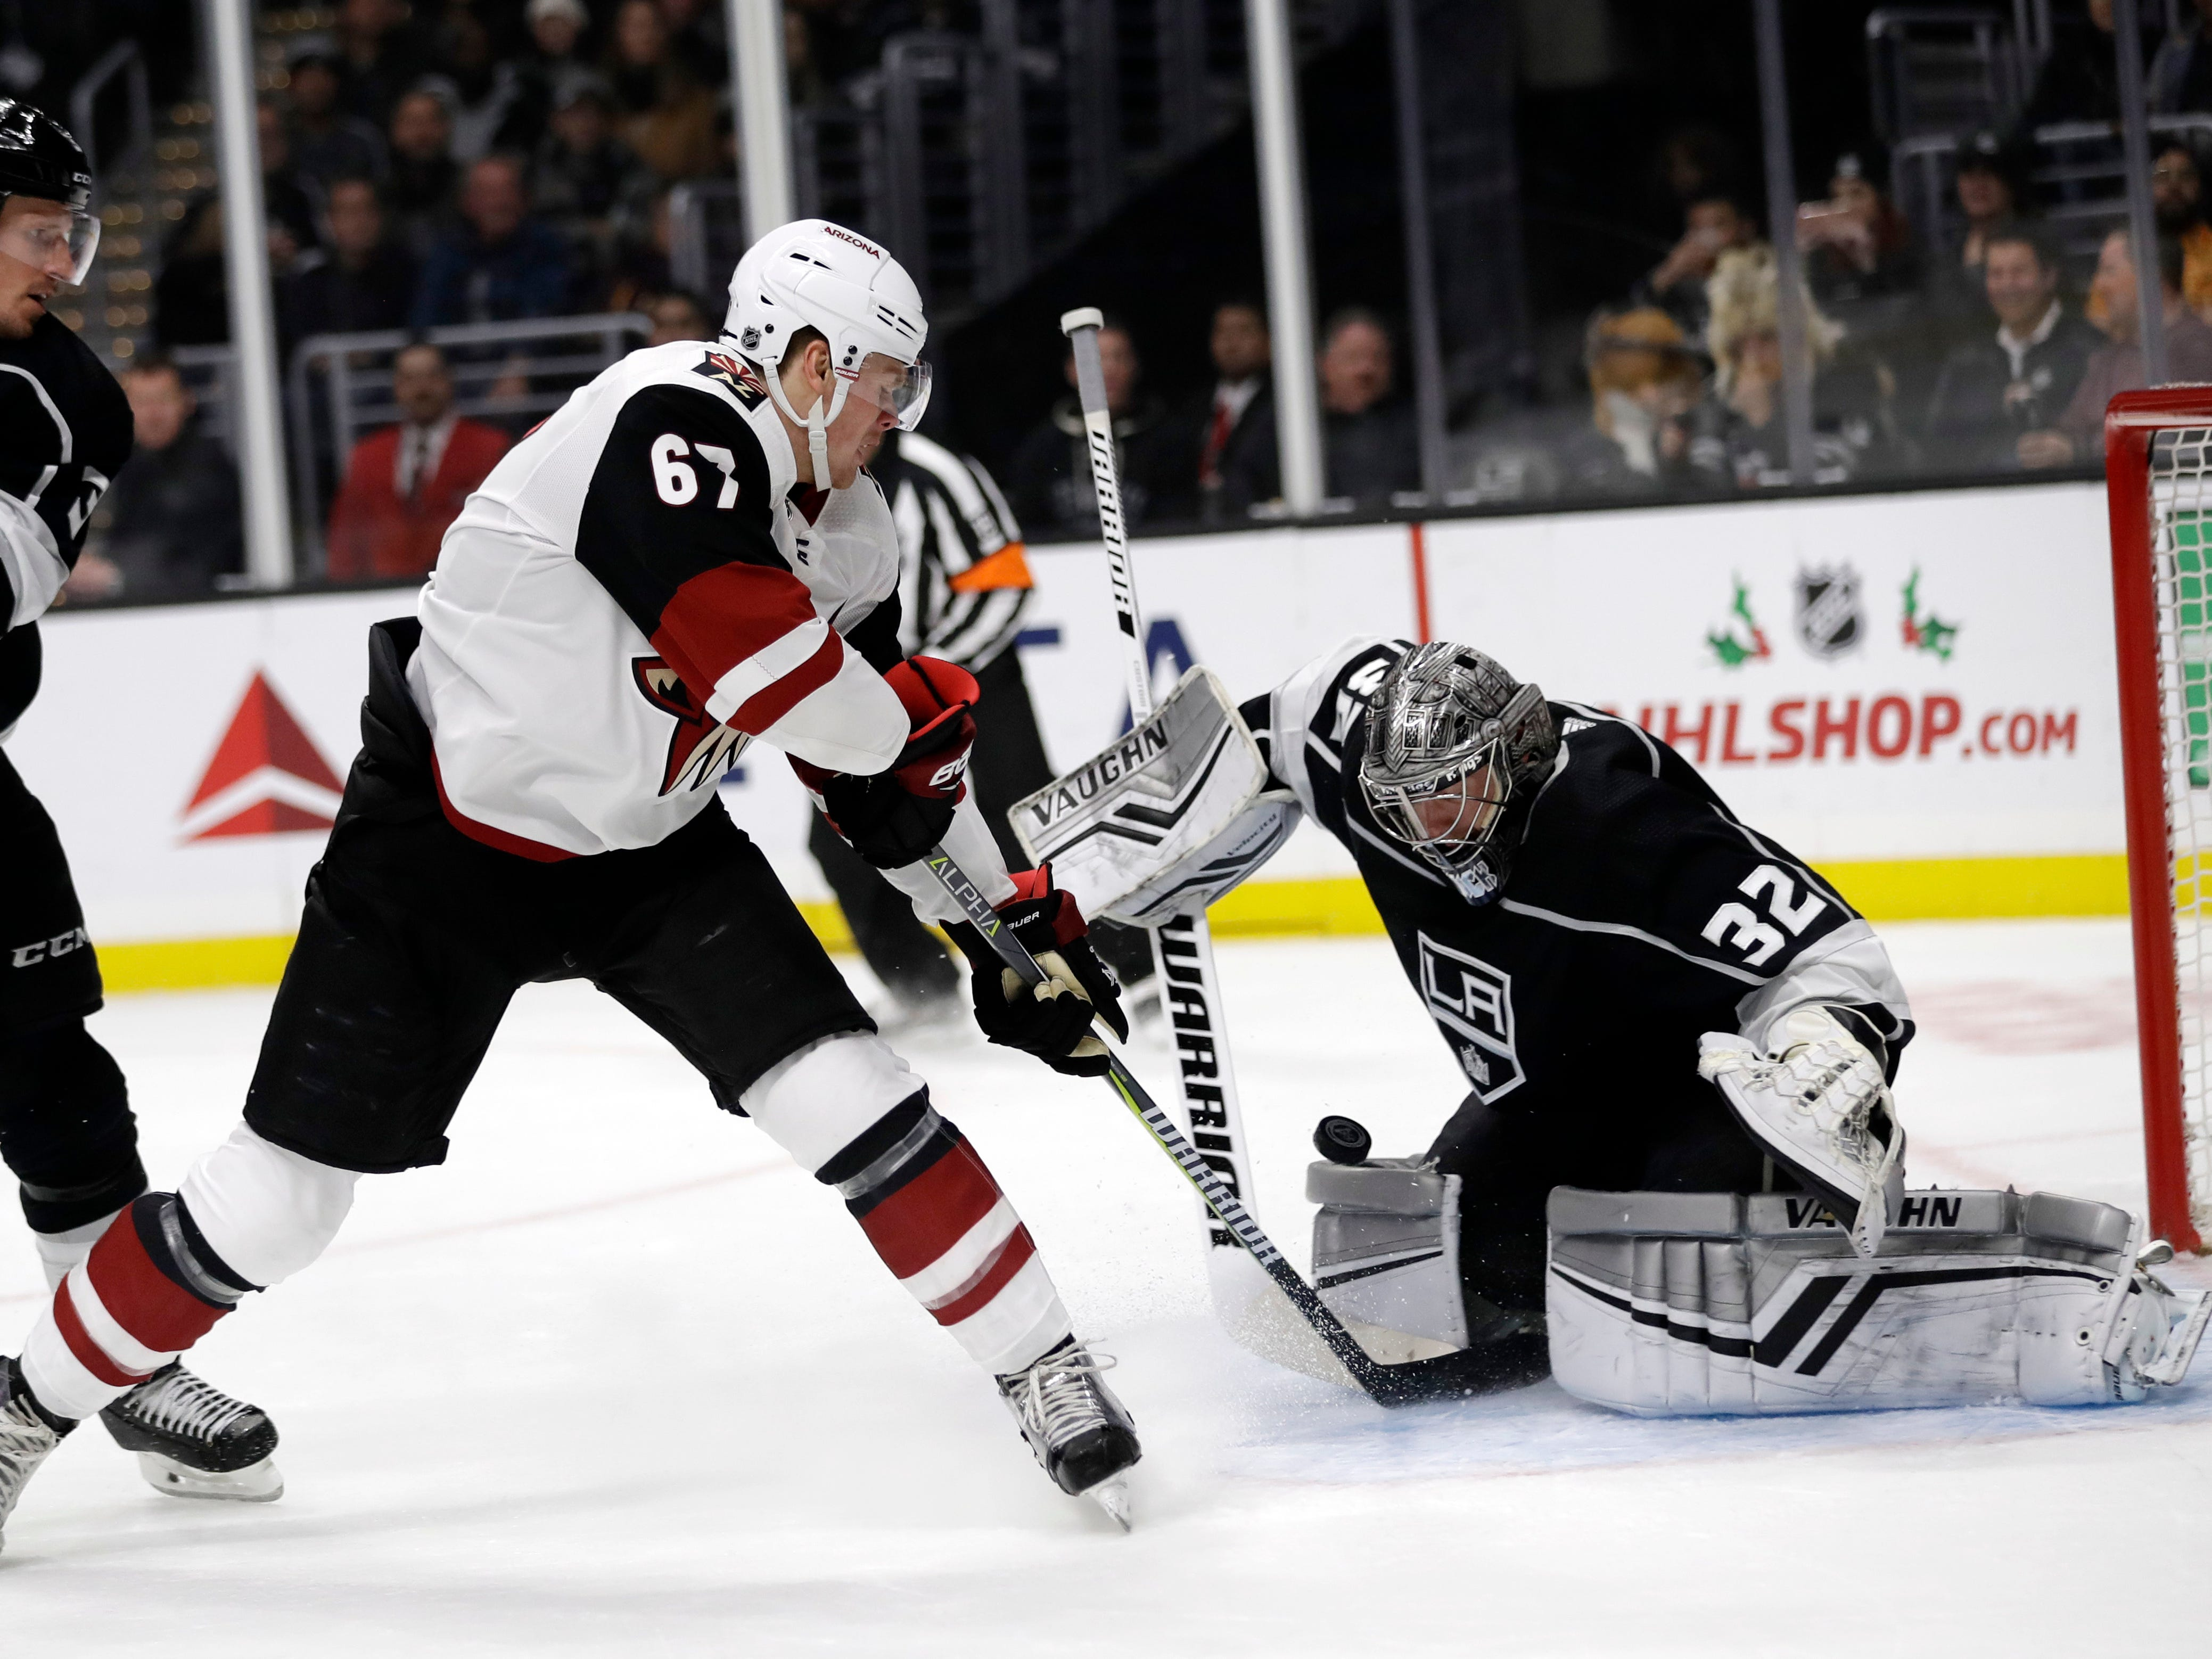 Arizona Coyotes' Lawson Crouse, center, scores past Los Angeles Kings goaltender Jonathan Quick (32) during the first period of an NHL hockey game Tuesday, Dec. 4, 2018, in Los Angeles.